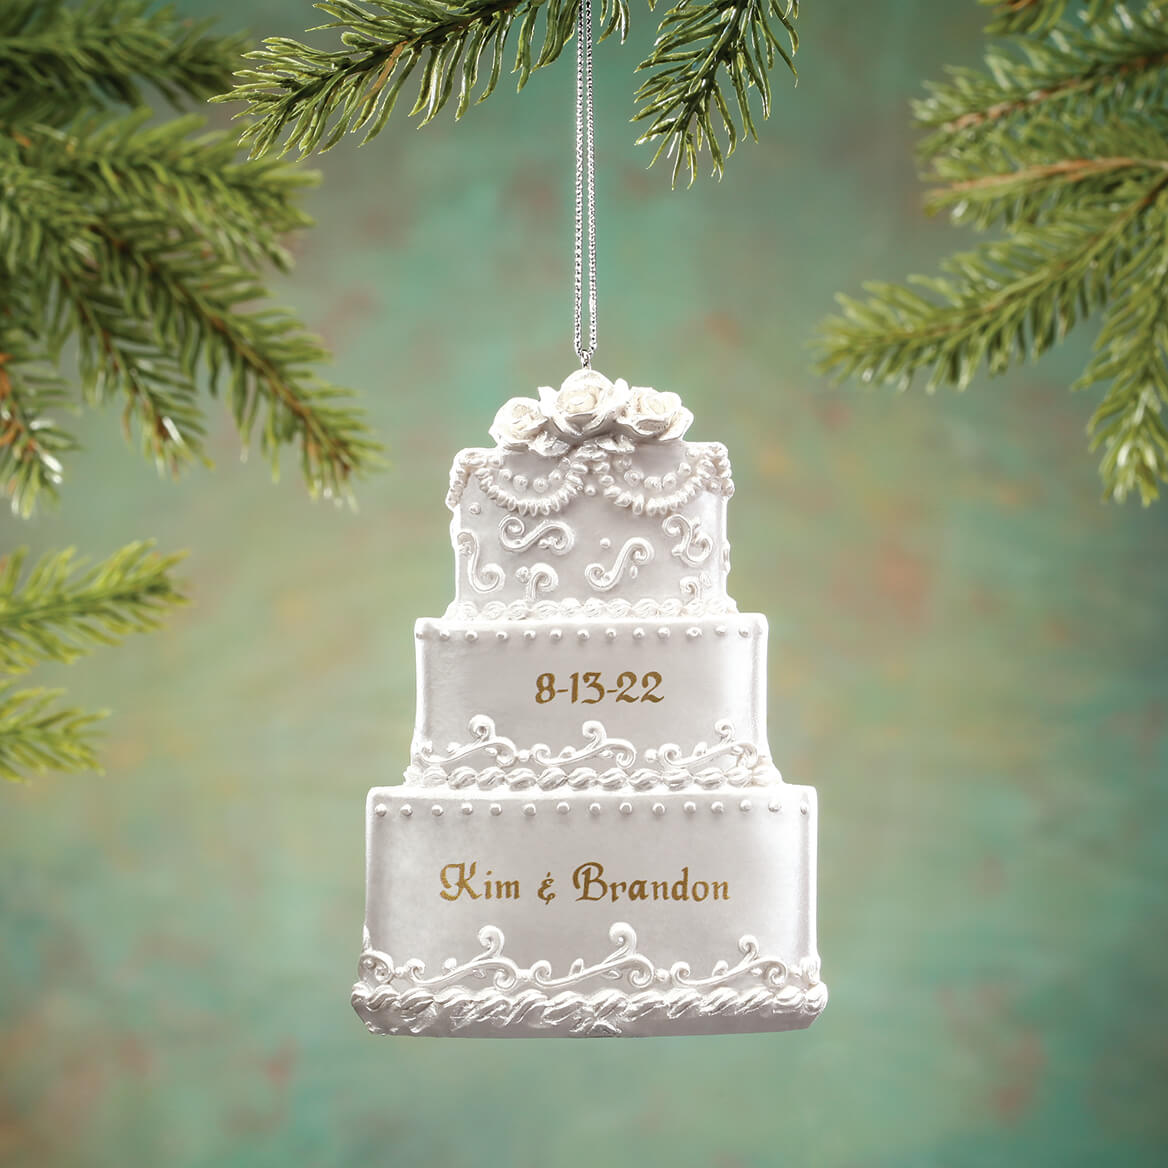 Personalized Wedding Cake Ornament - Christmas - Miles Kimball